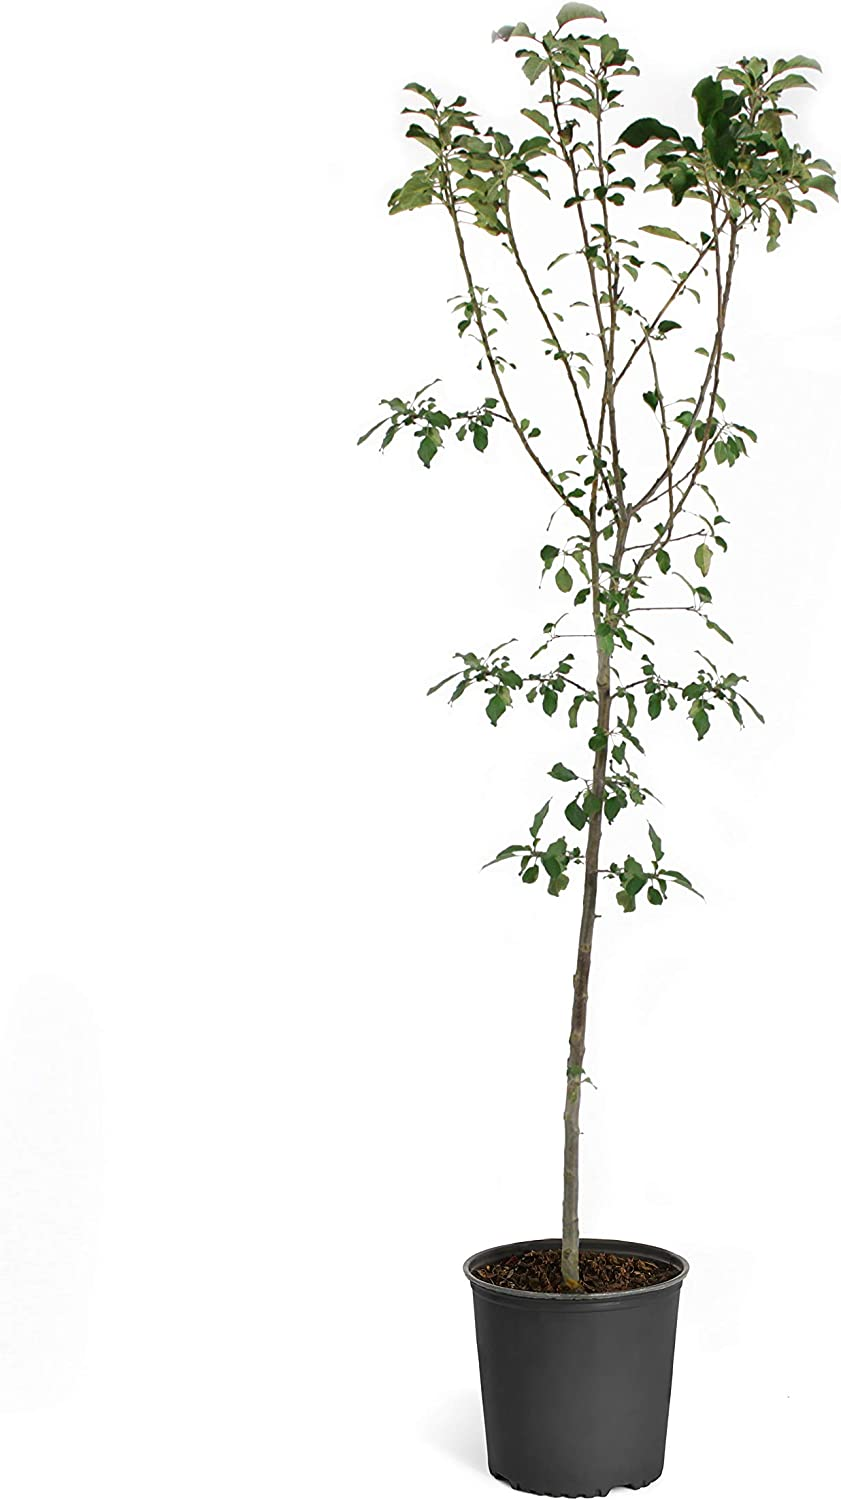 Brighter Blooms Anna Apple Trees - Branched, Developed Trees - More Branches Means More Apples (6-7 ft.)